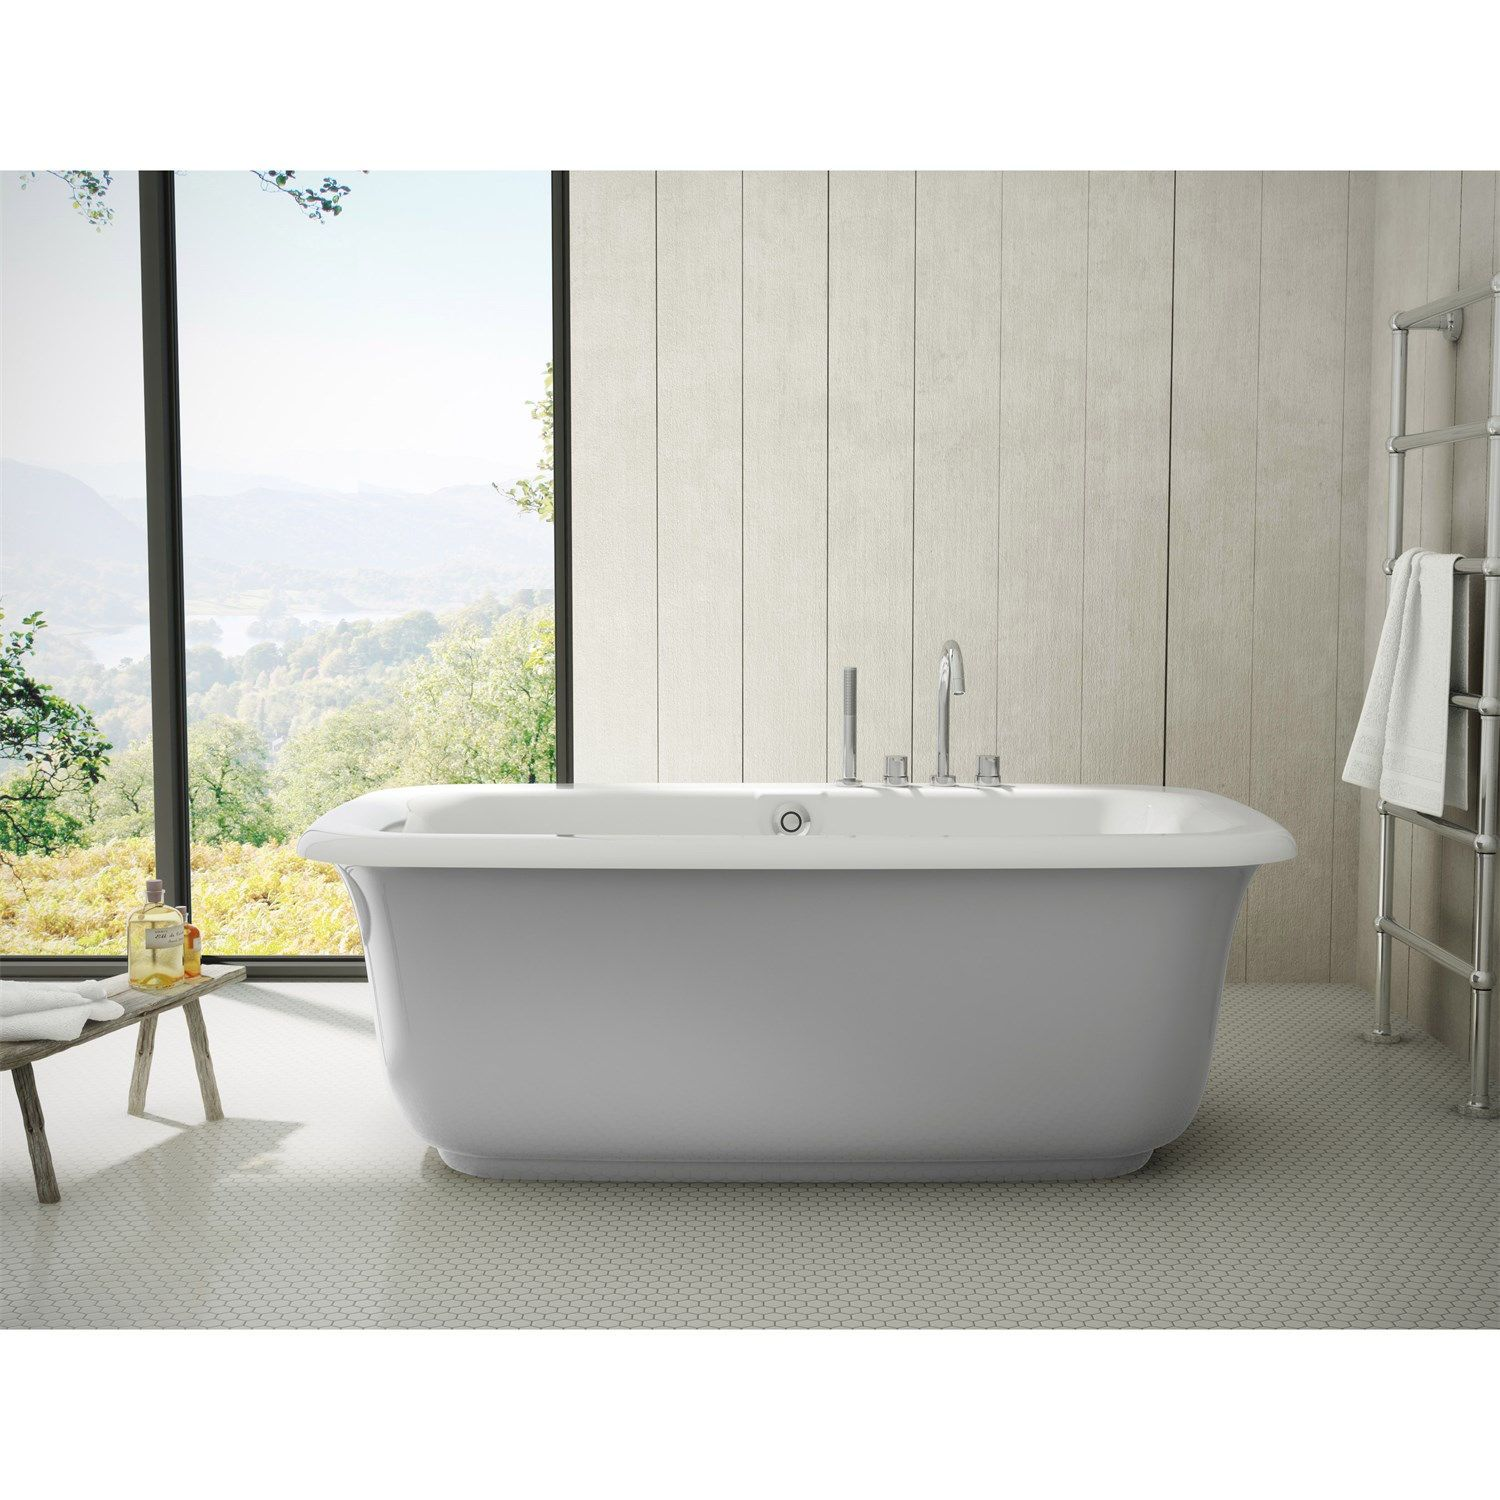 Maax 105756-000-006 Miles Freestanding Bathtub with Sterling Silver ...